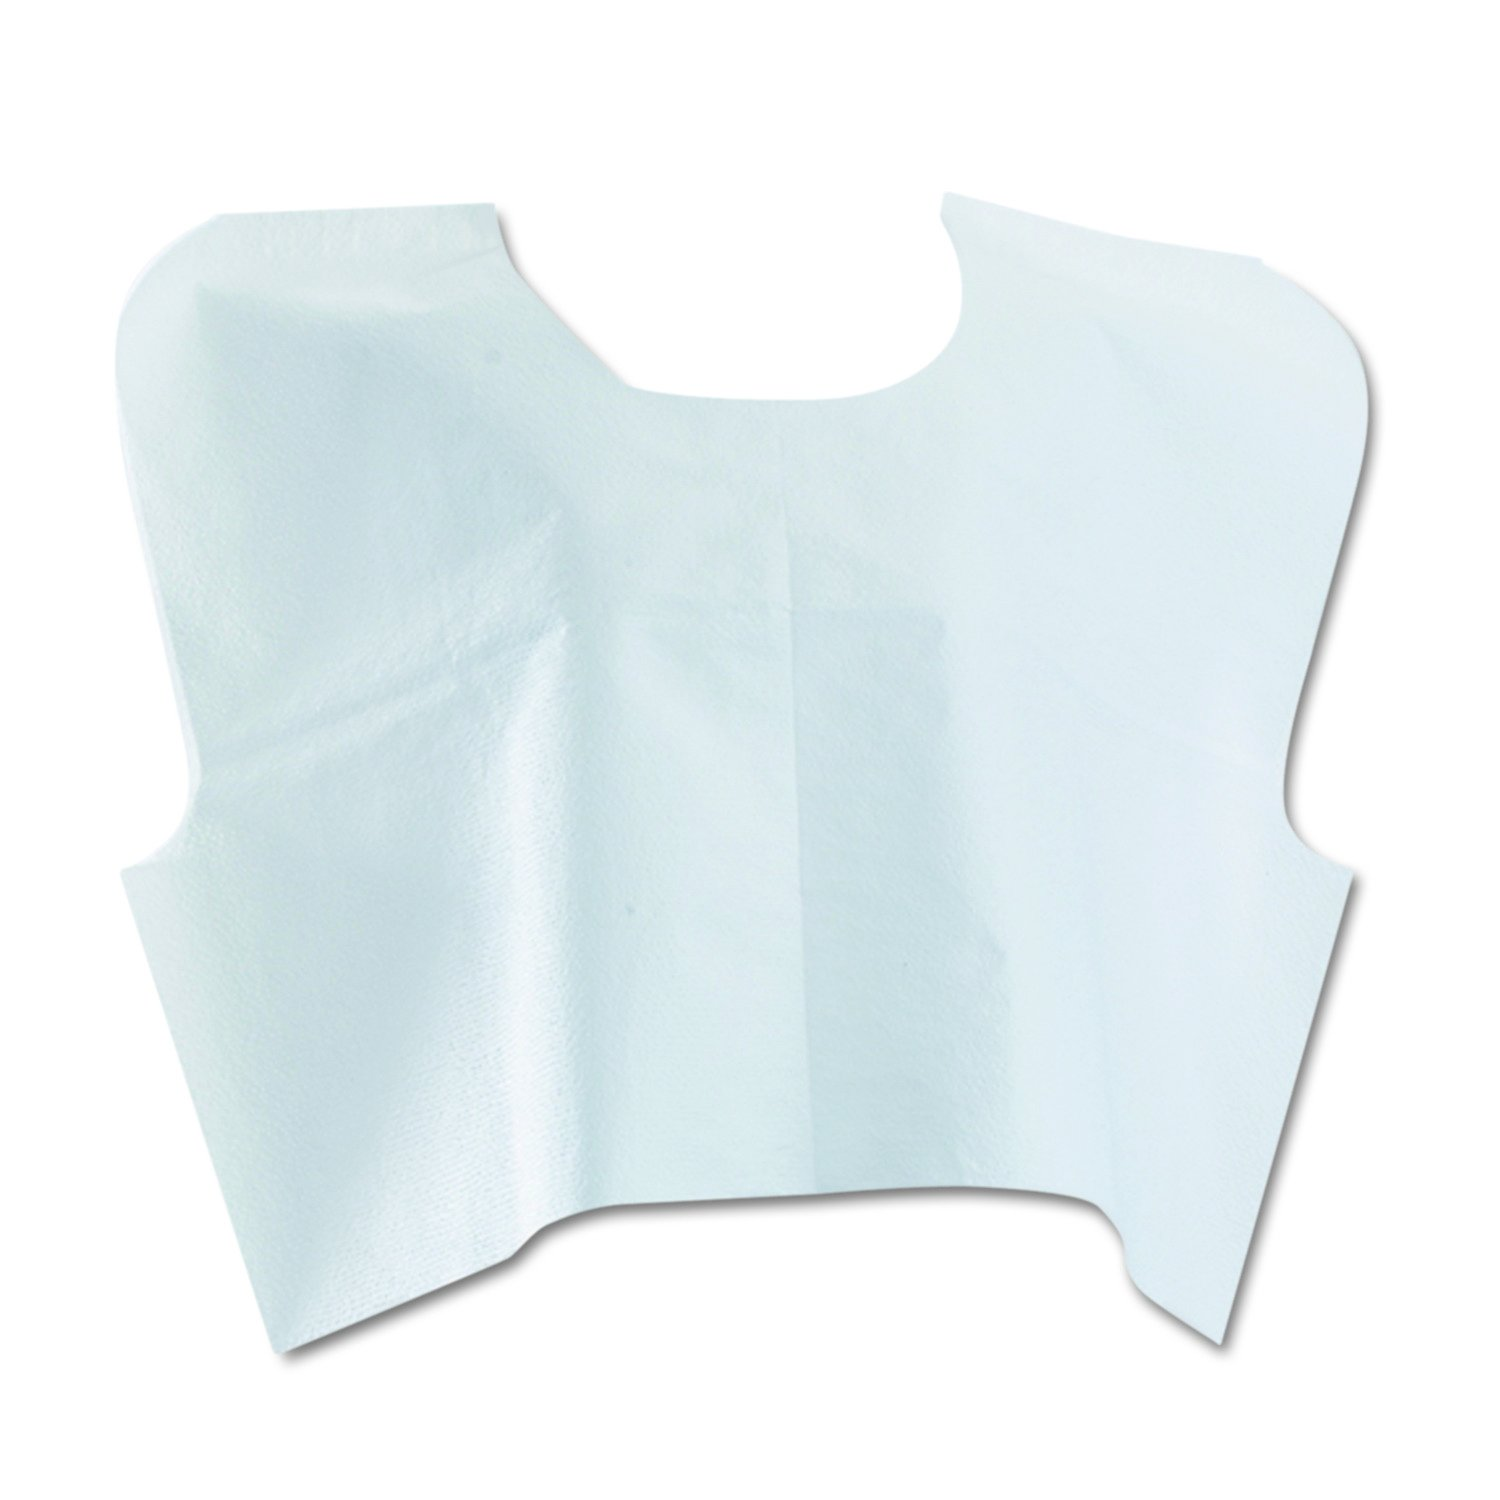 Medline NON24248 Disposable Tissue/Poly/Tissue Exam Capes, 30'' Width x 21'' Length, White (Pack of 100)